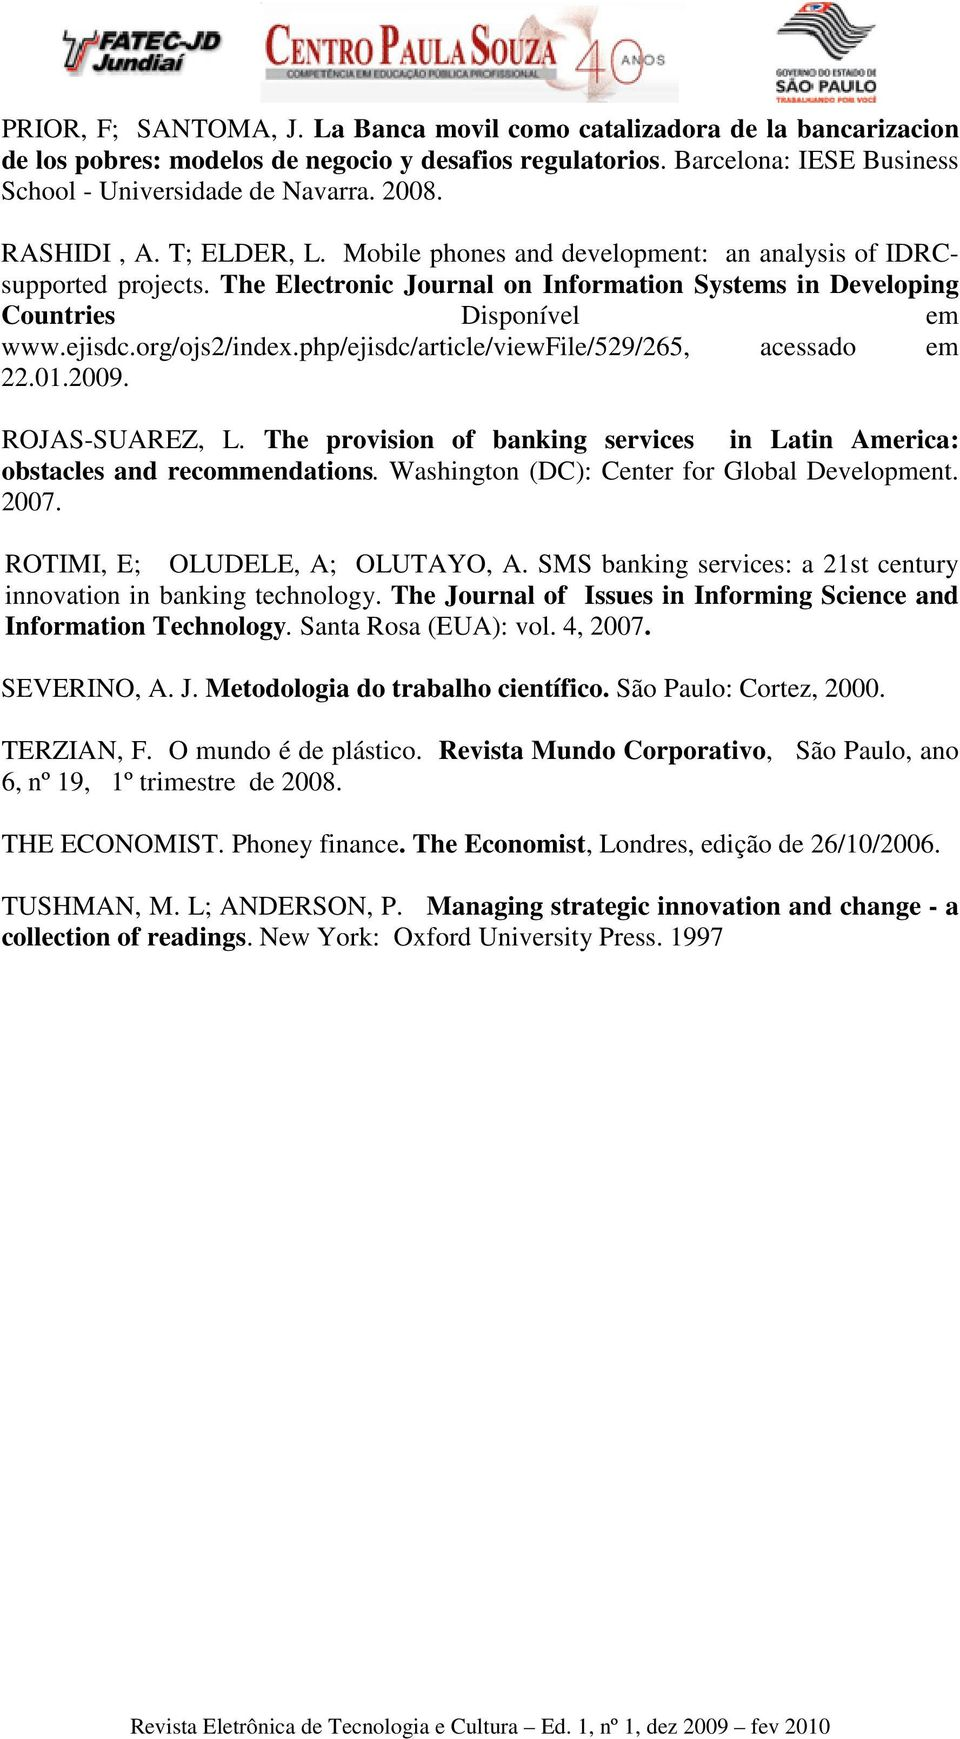 org/ojs2/index.php/ejisdc/article/viewfile/529/265, acessado em 22.01.2009. ROJAS-SUAREZ, L. The provision of banking services in Latin America: obstacles and recommendations.